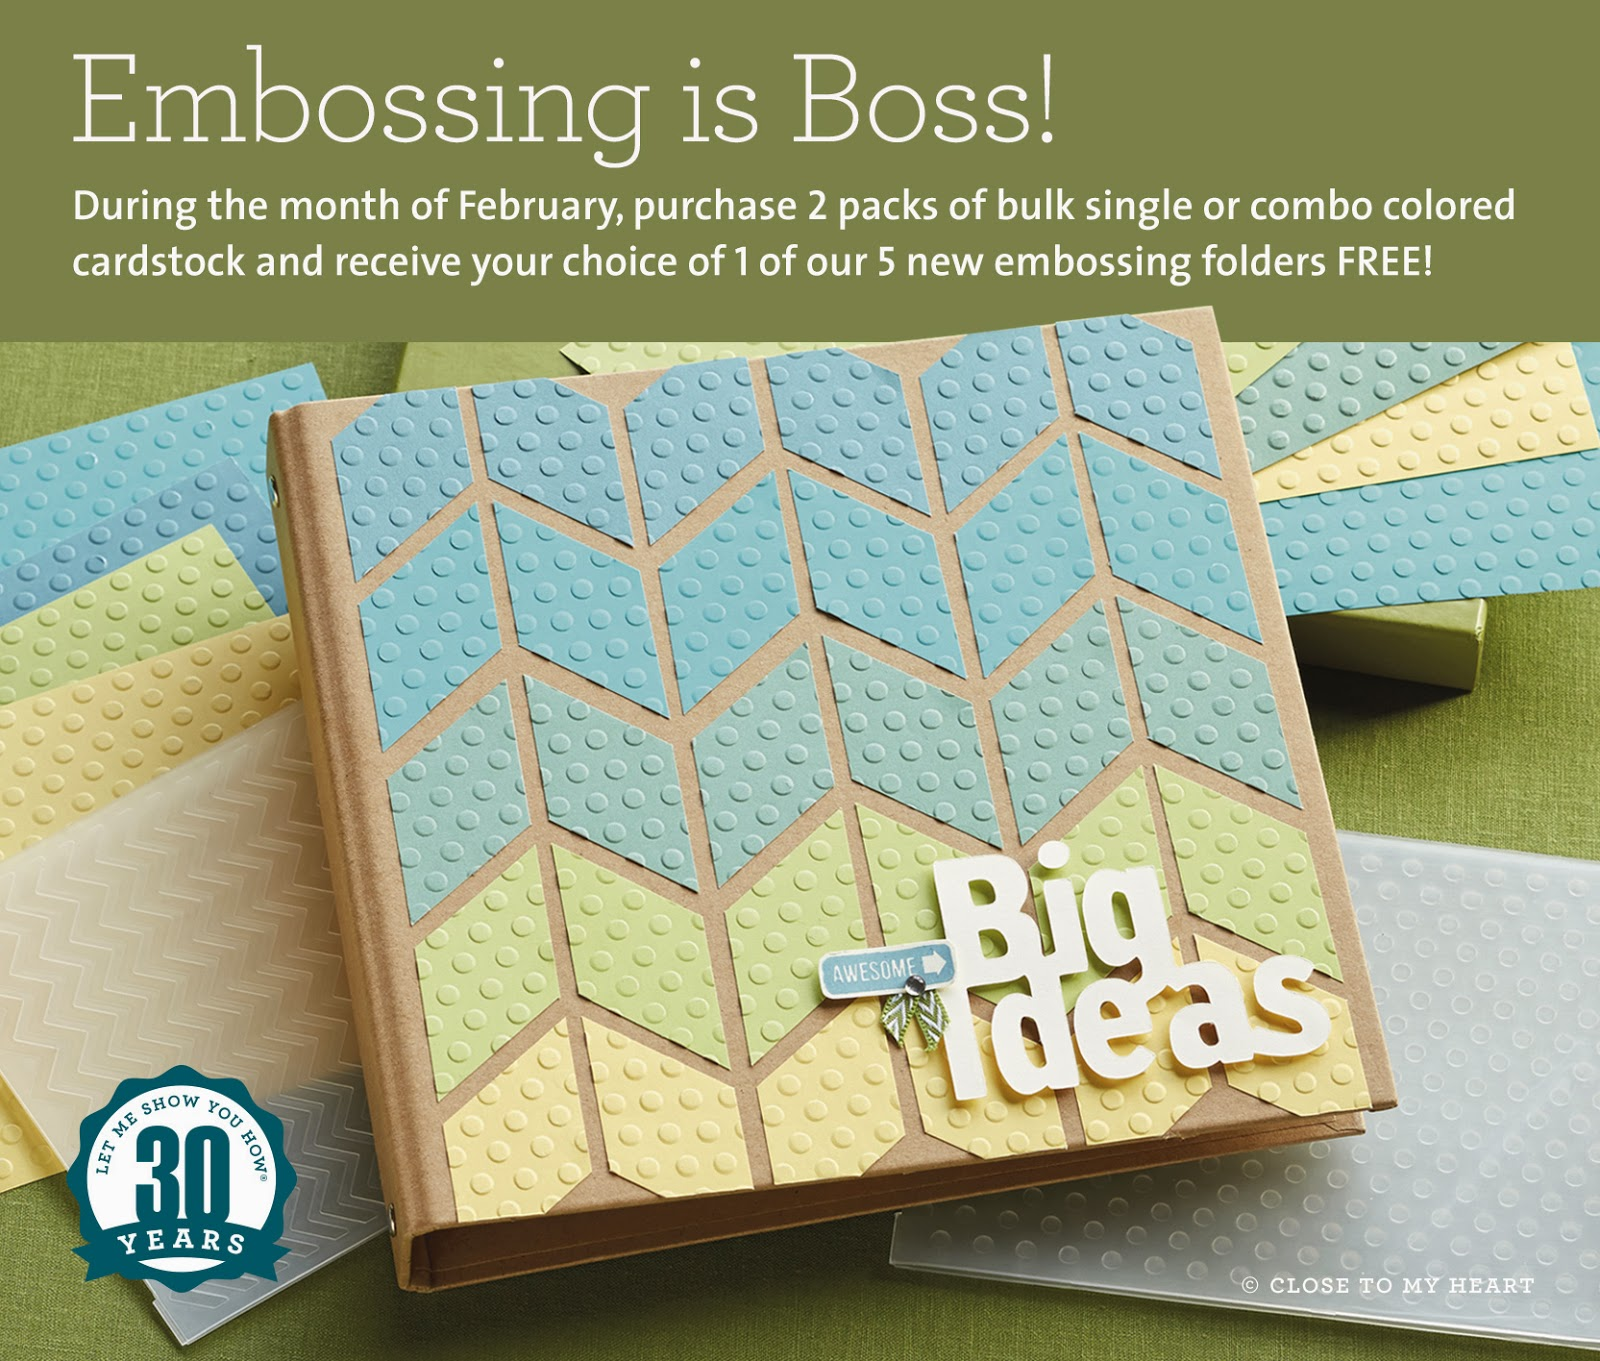 http://jaymamalme.ctmh.com/ctmh/promotions/campaigns/1402-embossing-is-boss.aspx